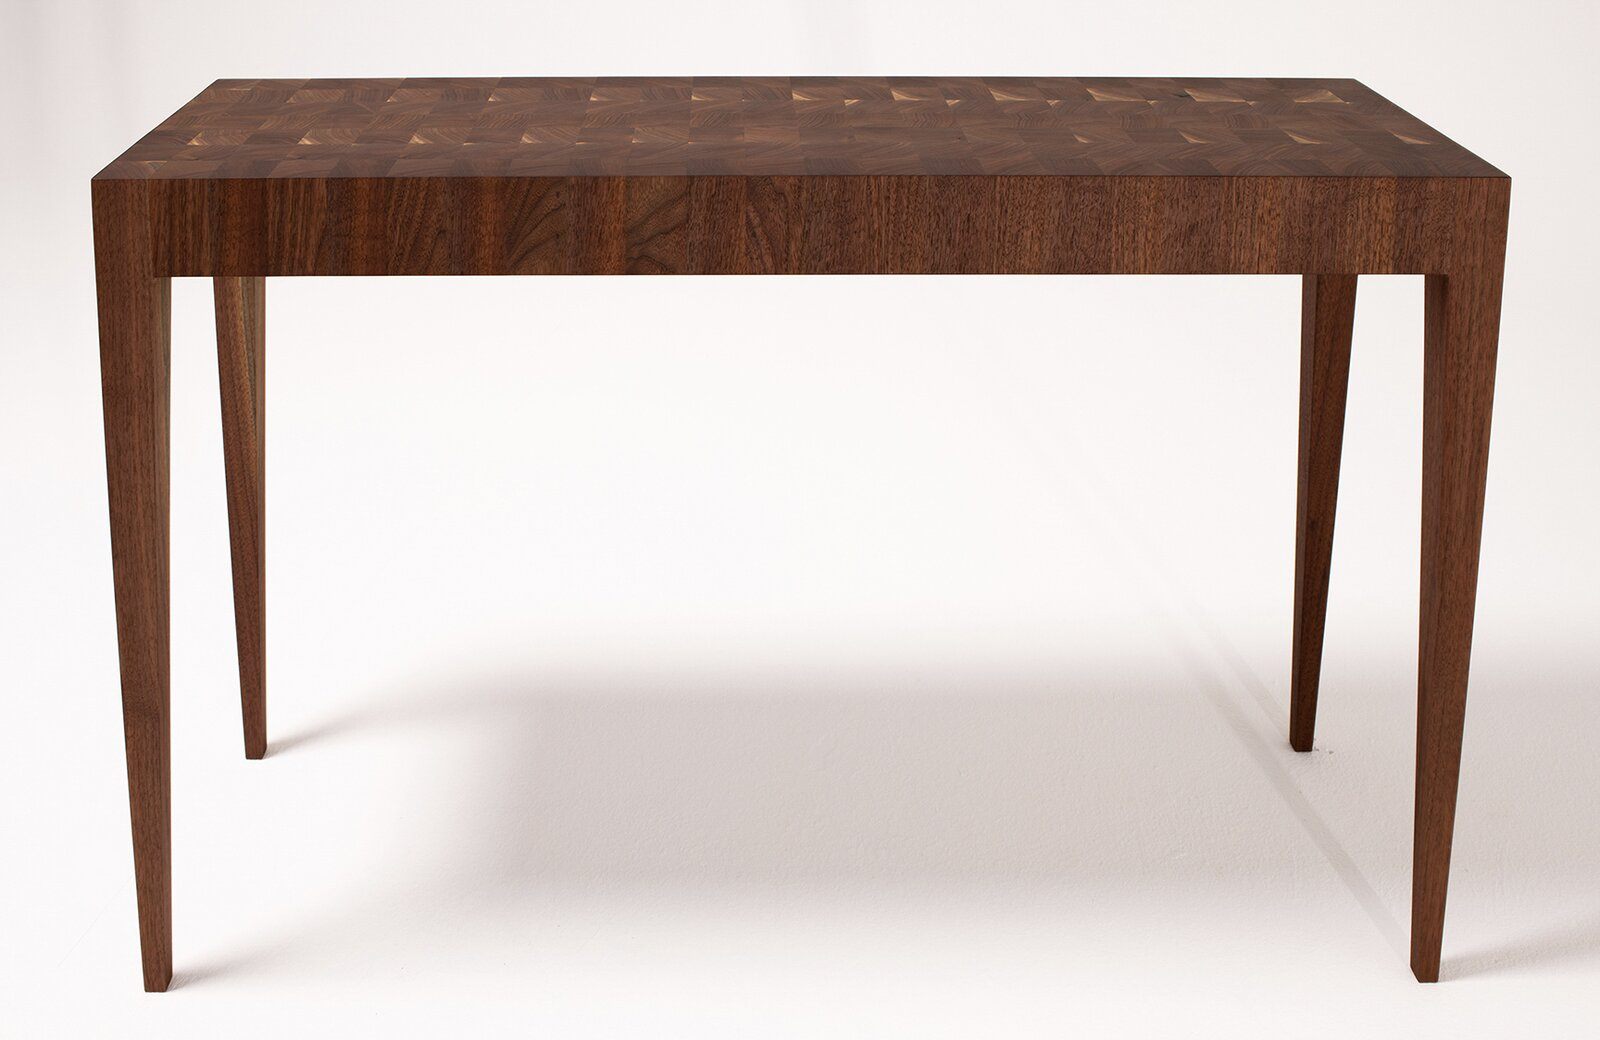 "A console table by <span style=""font-family: Theinhardt, -apple-system, BlinkMacSystemFont, &quot;Segoe UI&quot;, Roboto, Oxygen-Sans, Ubuntu, Cantarell, &quot;Helvetica Neue&quot;, sans-serif;"">O/D\O Lab</span>  Photo 3 of 8 in Designer to Know: O/D\O Lab"